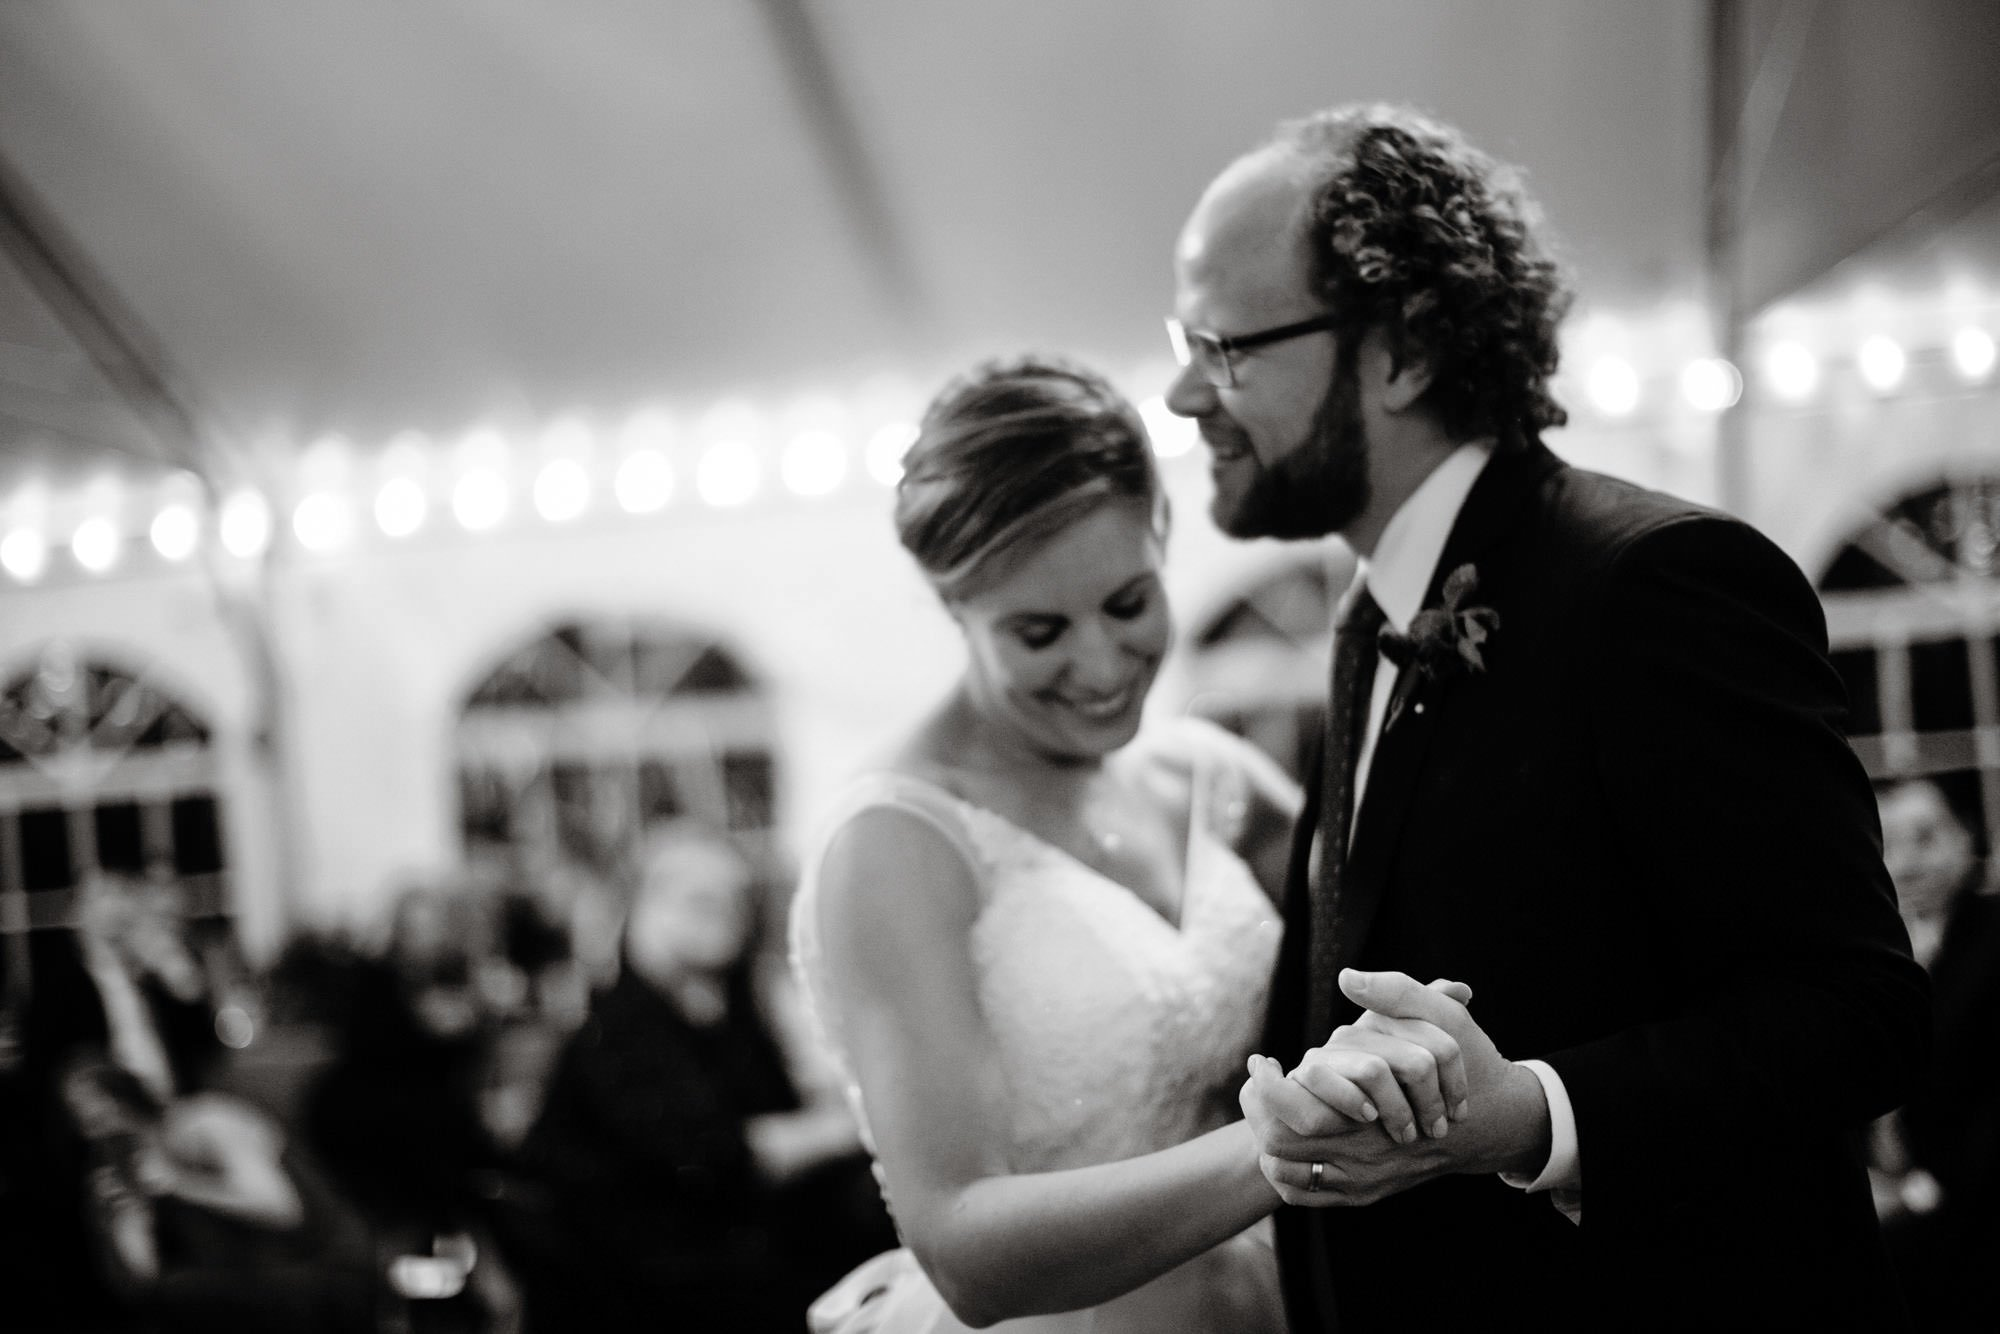 The couple share their first dance in the tented reception at Strong Mansion.